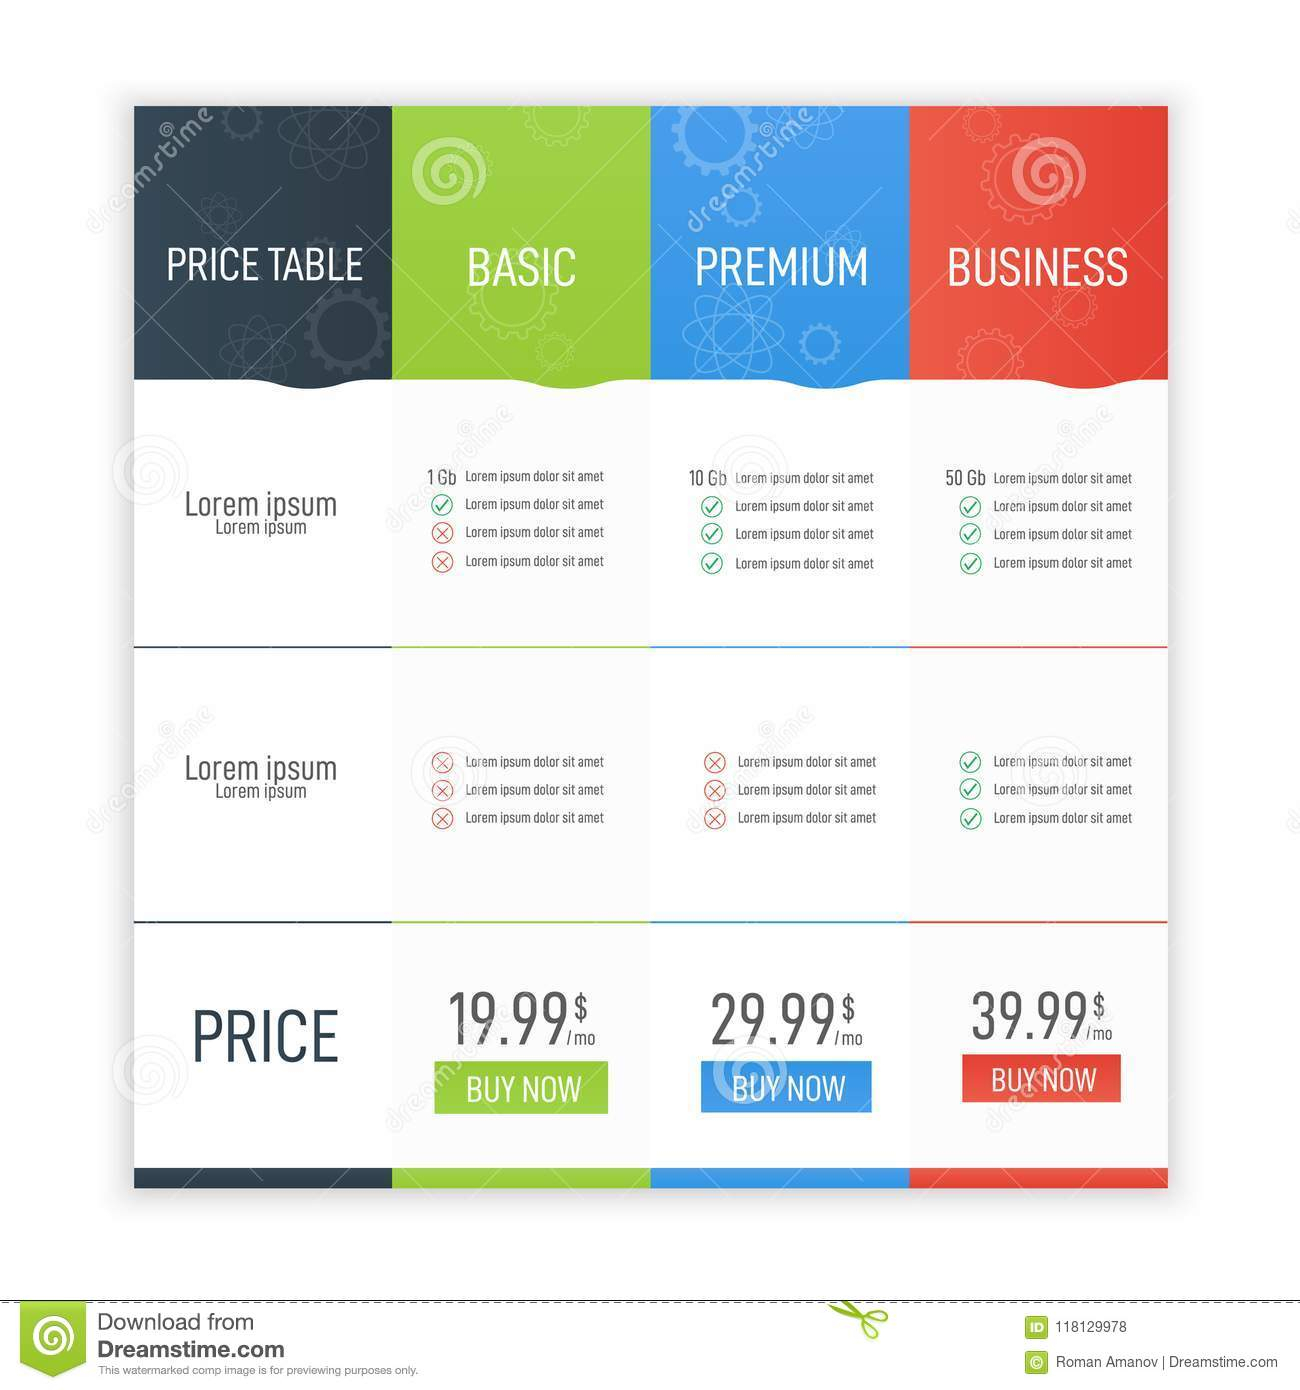 Price Table For Websites And Applications. Business Infographic To Business Applications Template